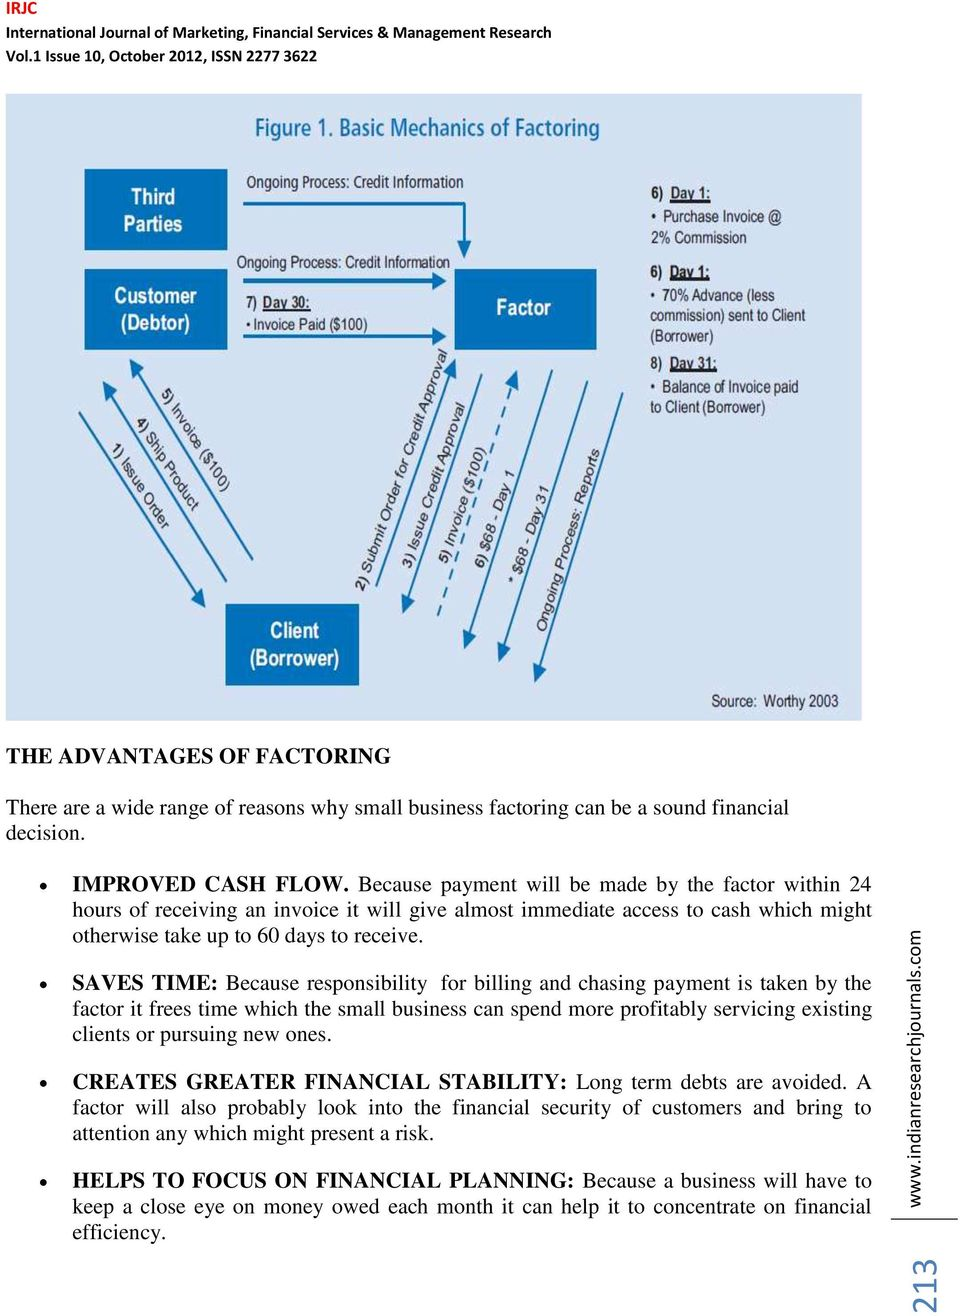 THE CONCEPTUAL FRAMEWORK OF FACTORING ON SMALL AND MEDIUM